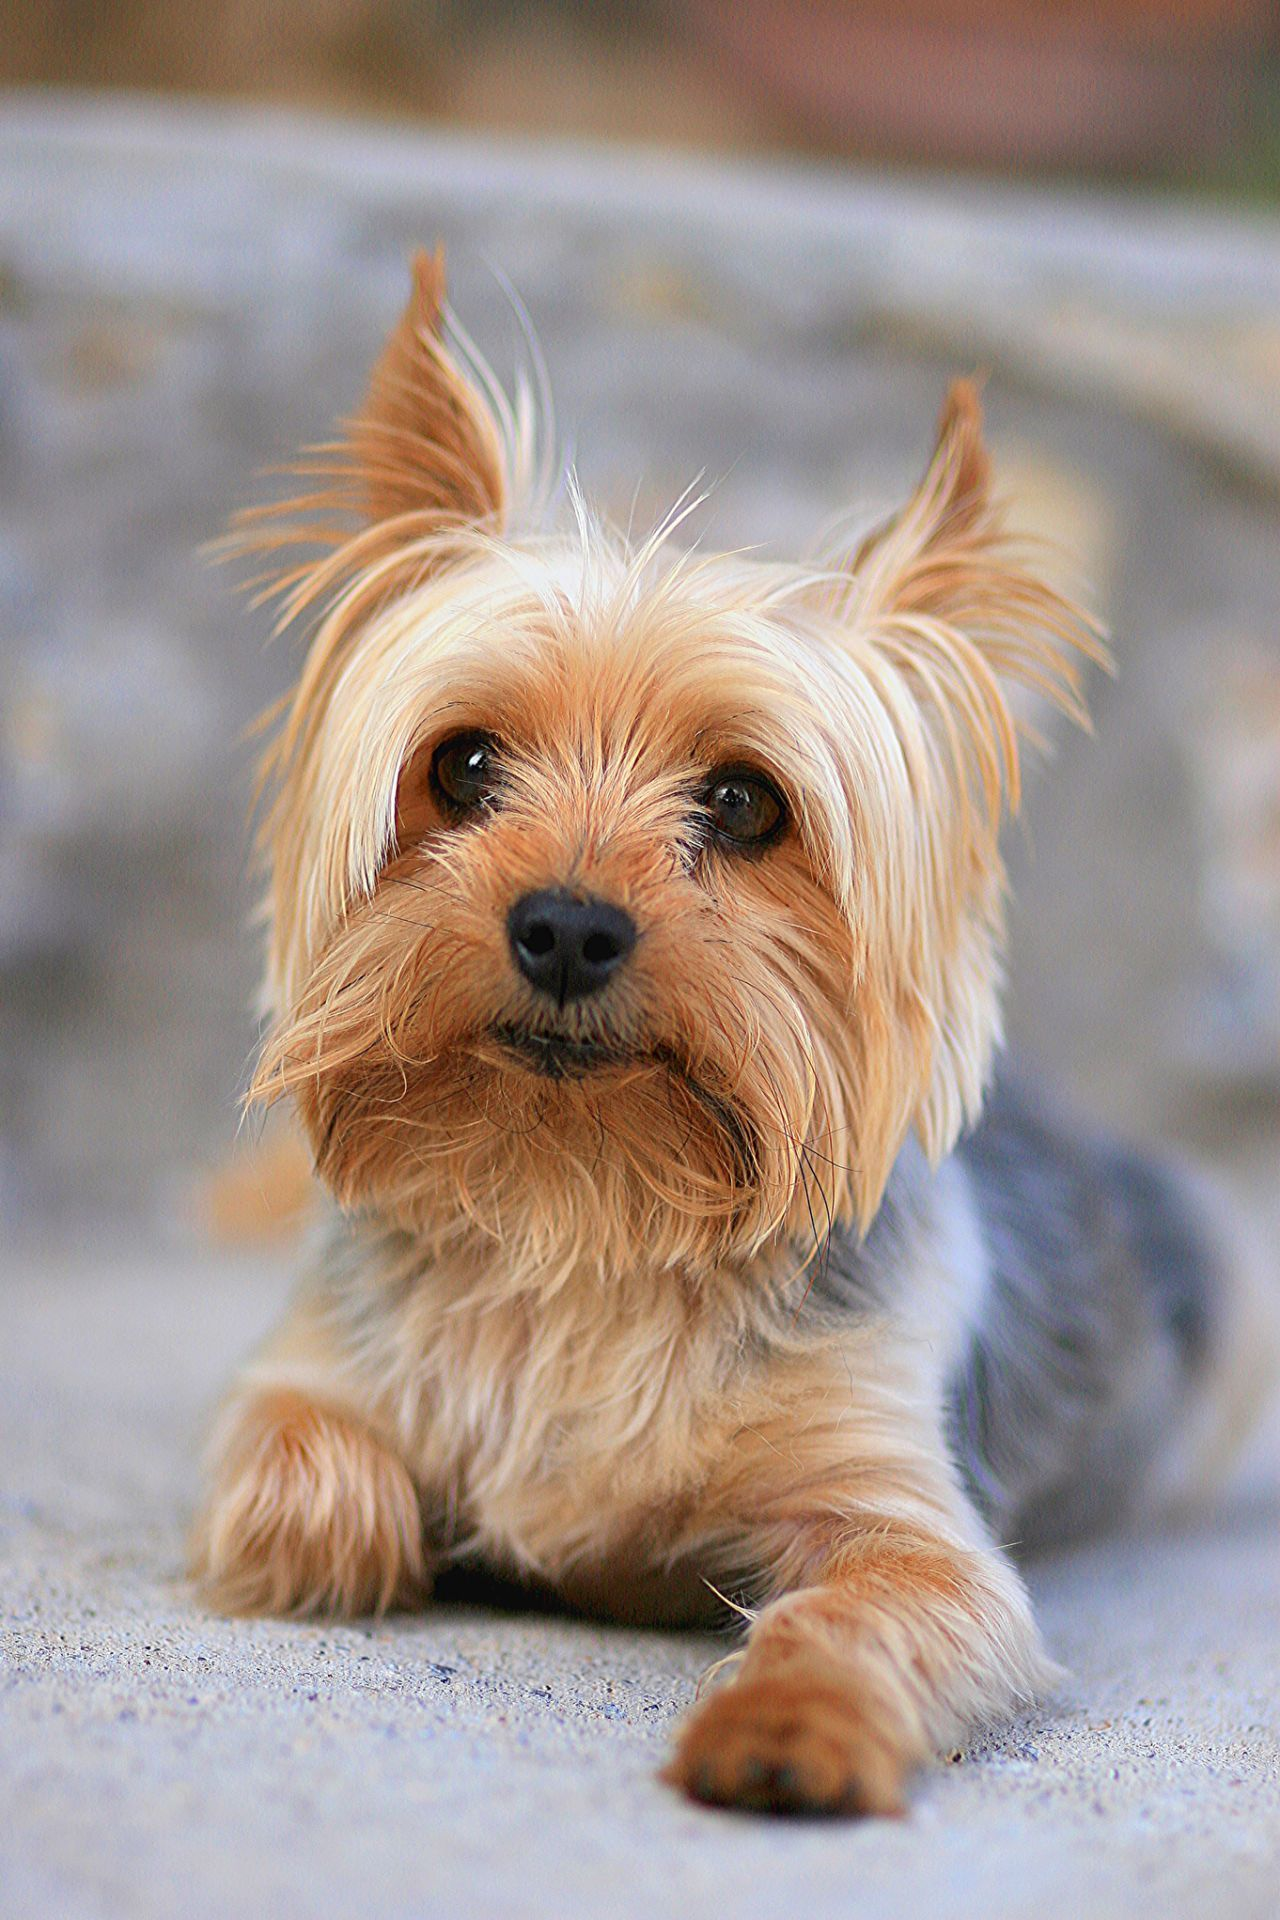 Pin By Natalia On Cute Animals Teacup Yorkie Puppy Yorkie Puppy Yorkshire Terrier Dog